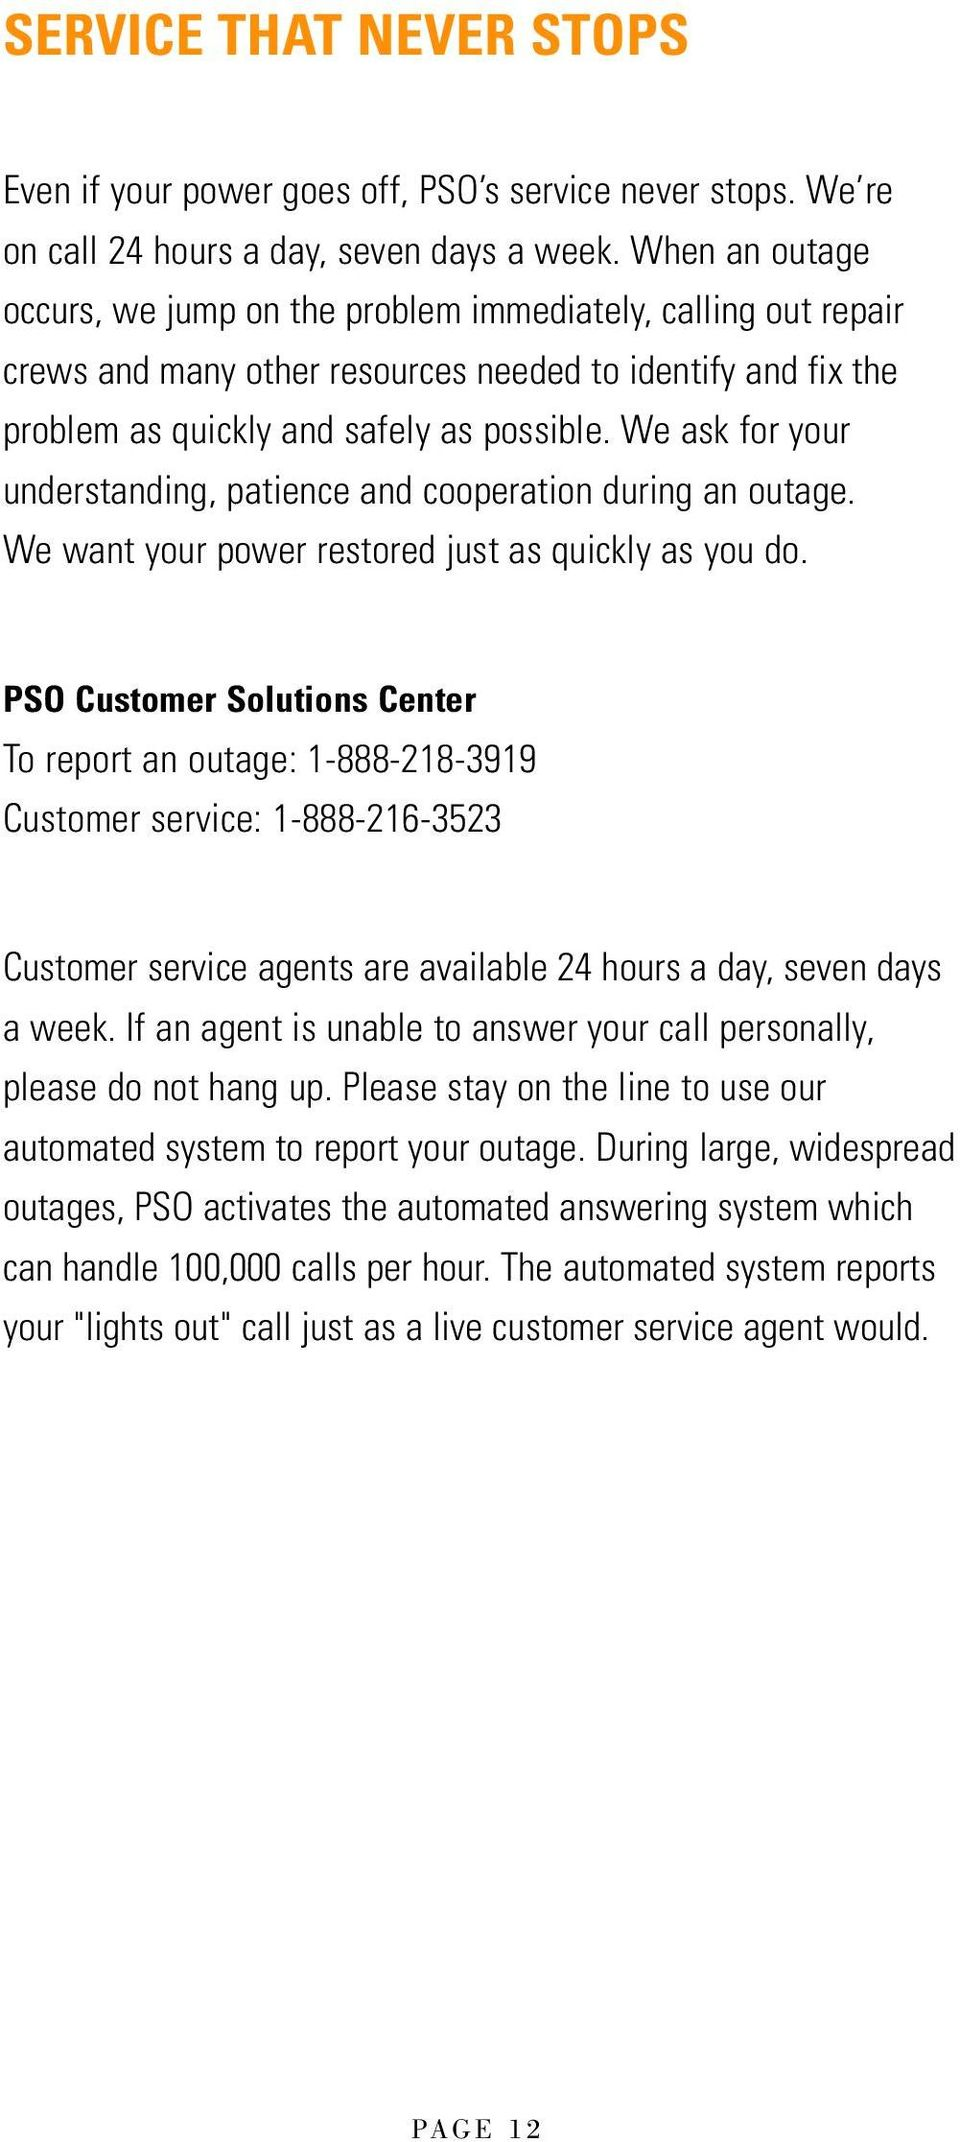 We ask for your understanding, patience and cooperation during an outage. We want your power restored just as quickly as you do.